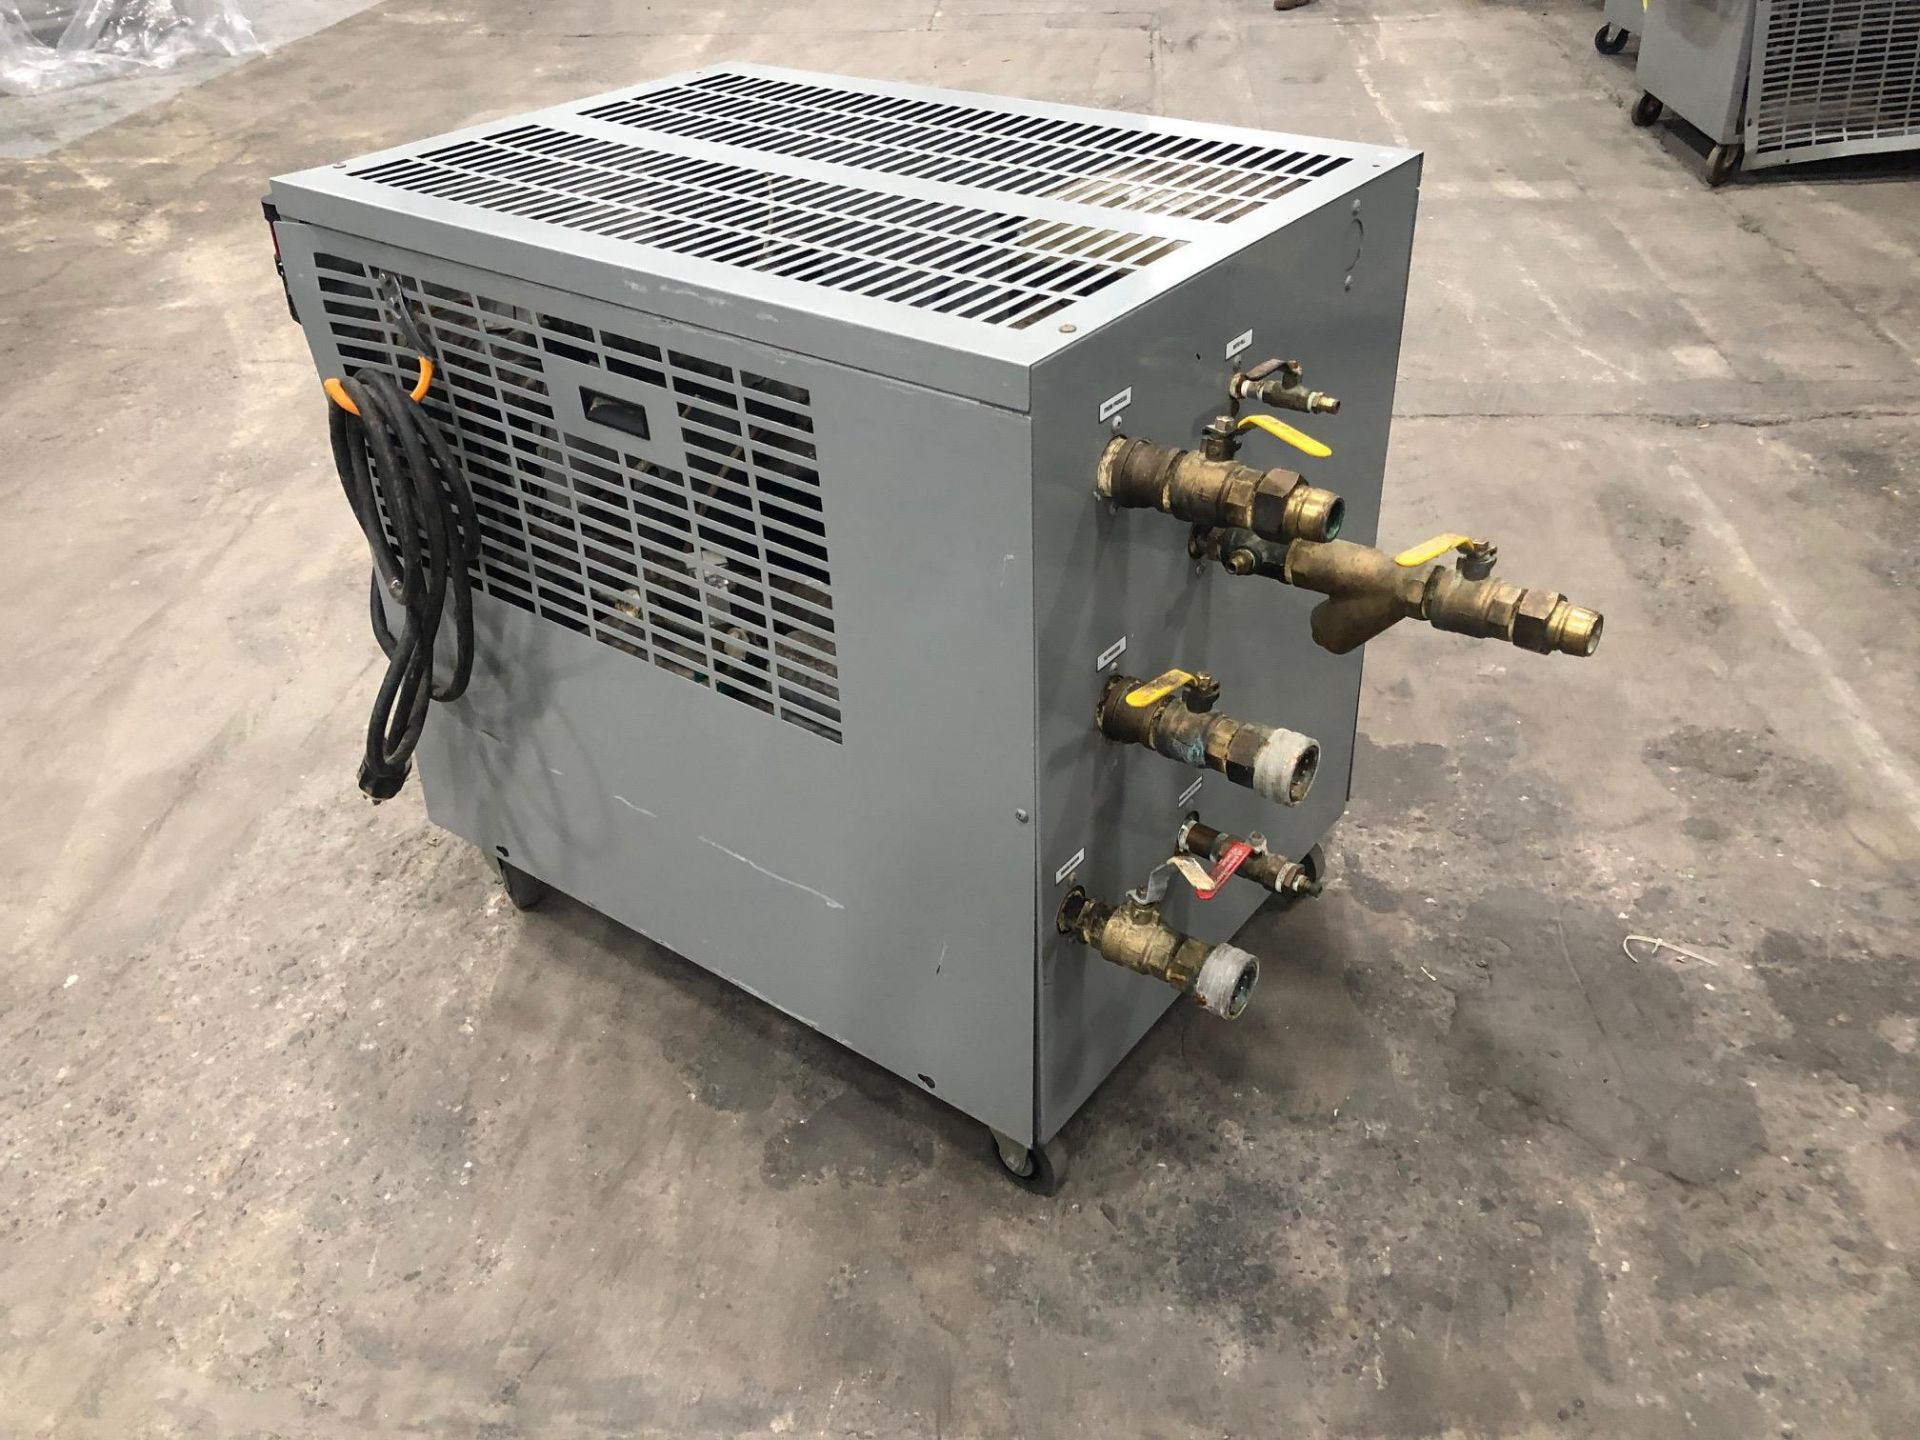 Lot 116A - 5 Ton Mokon Water Cooled Chiller